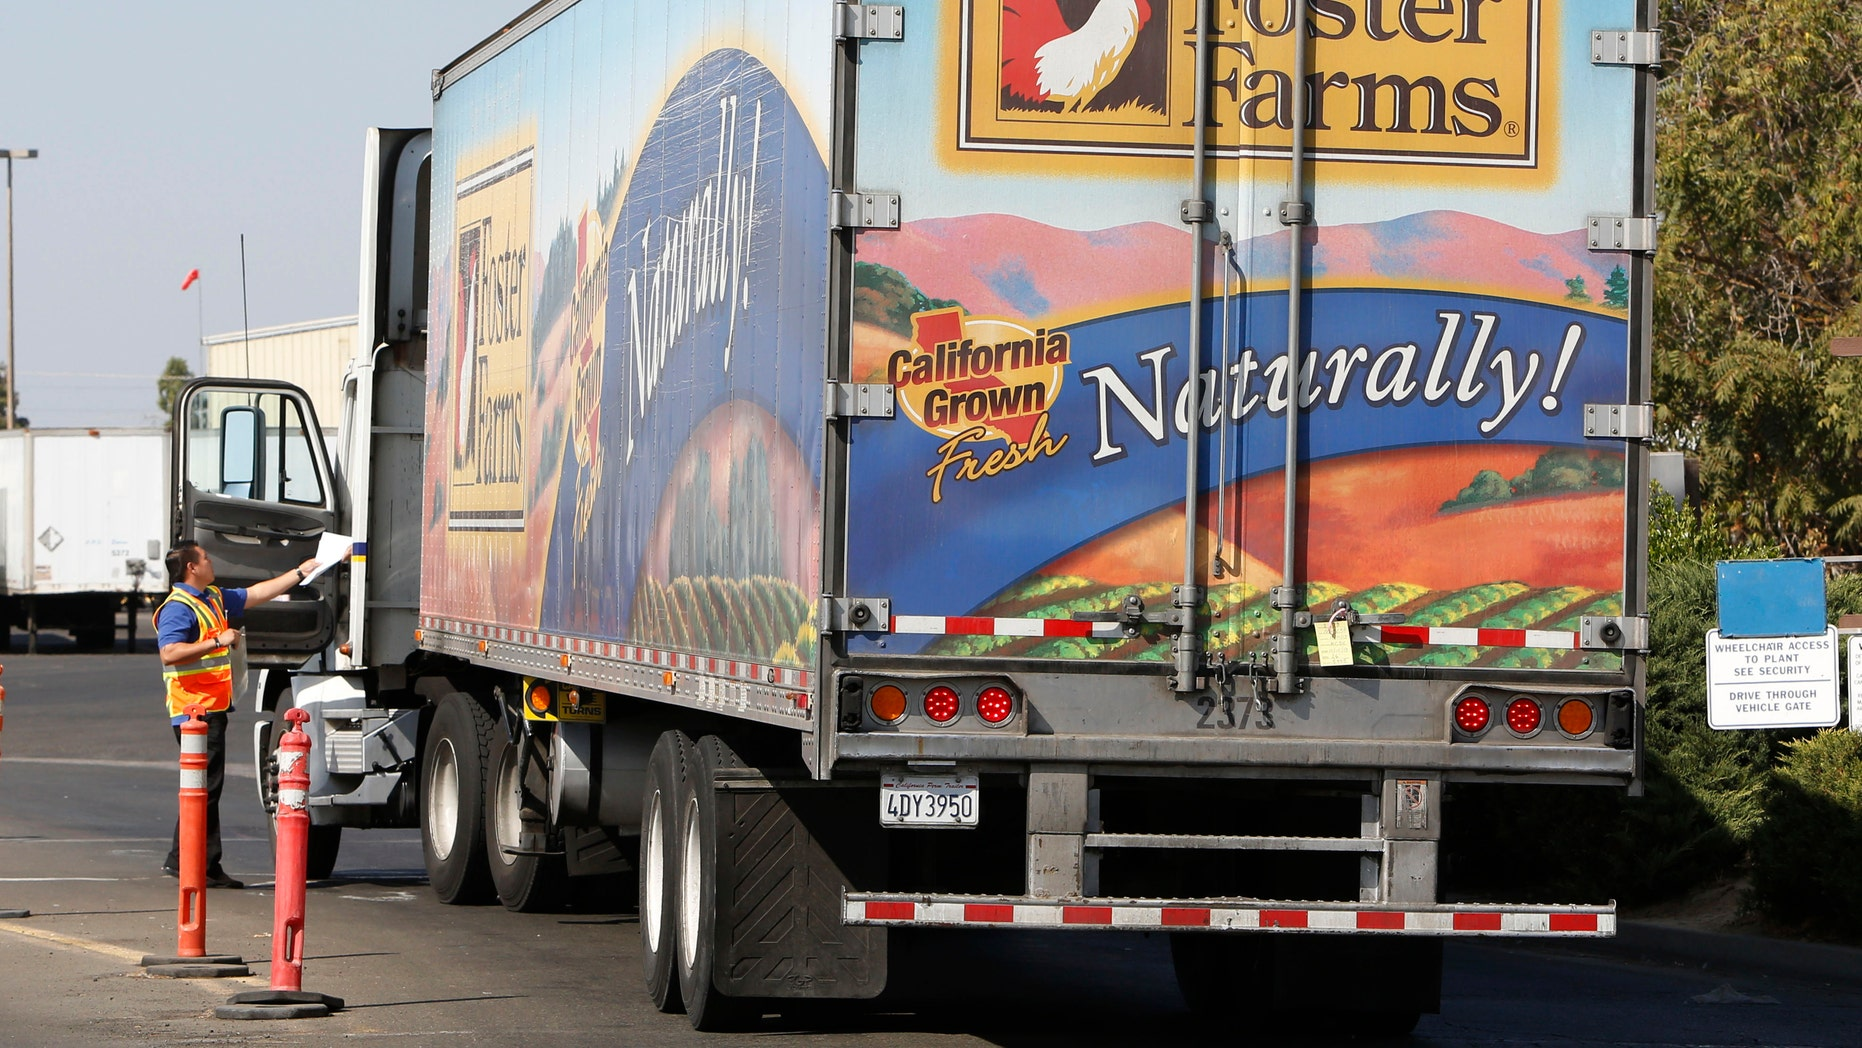 A truck enters the Foster Farms processing plant on Thursday, Oct. 10, 2013, in Livingston, Calif. (AP Photo/Rich Pedroncelli)